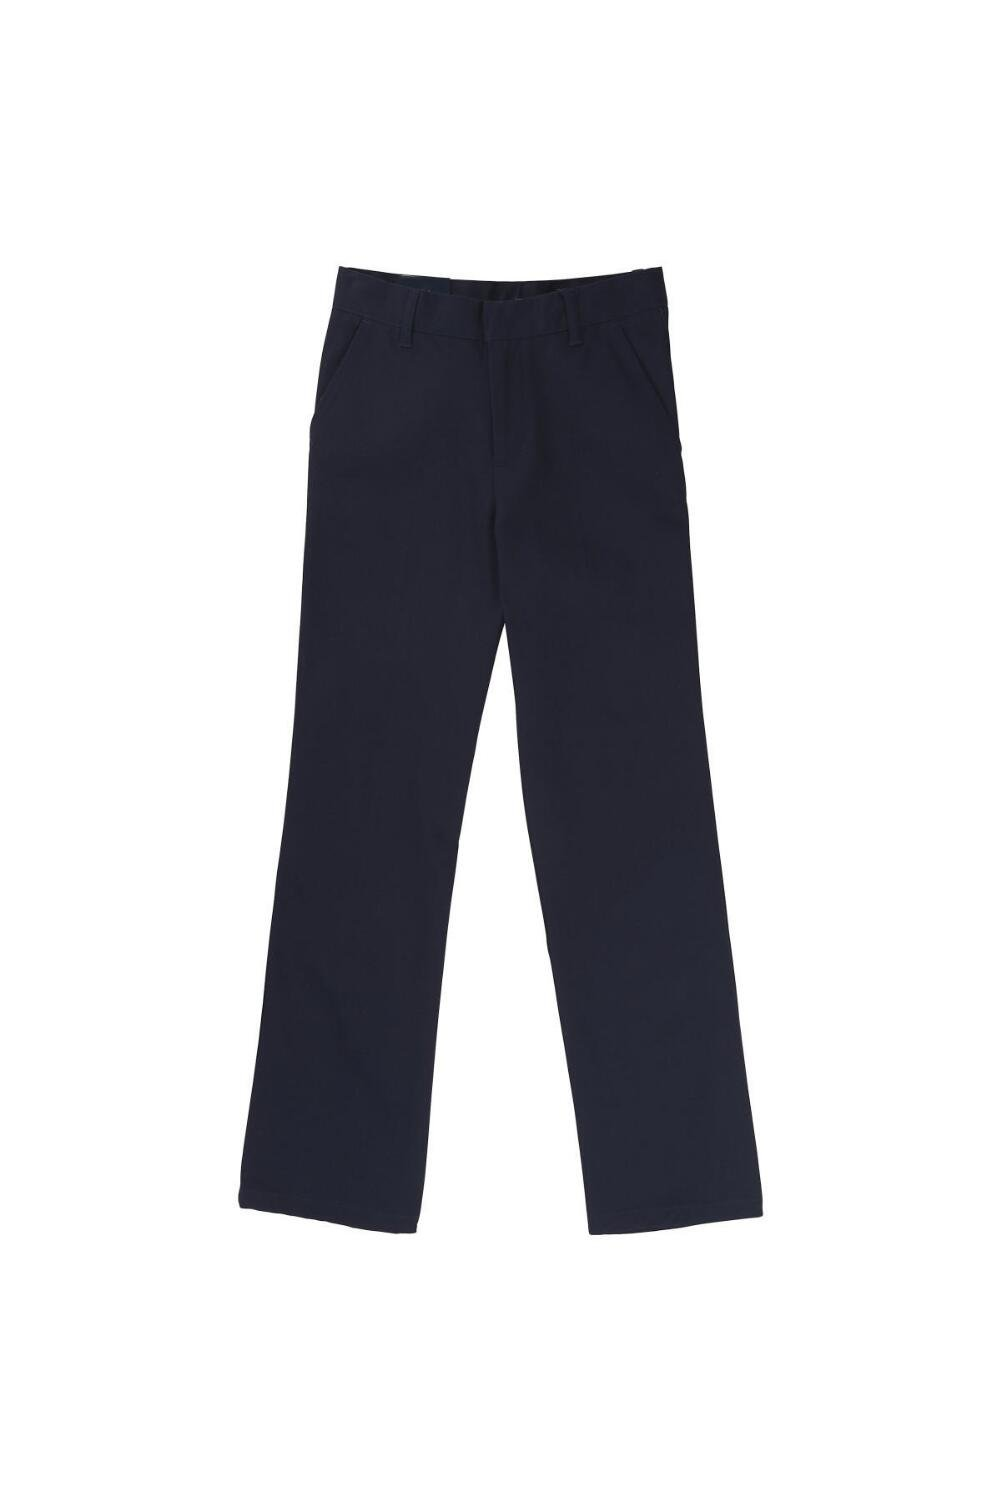 French Toast Little Boys' Flat Front Double Knee Pant, Navy, 6